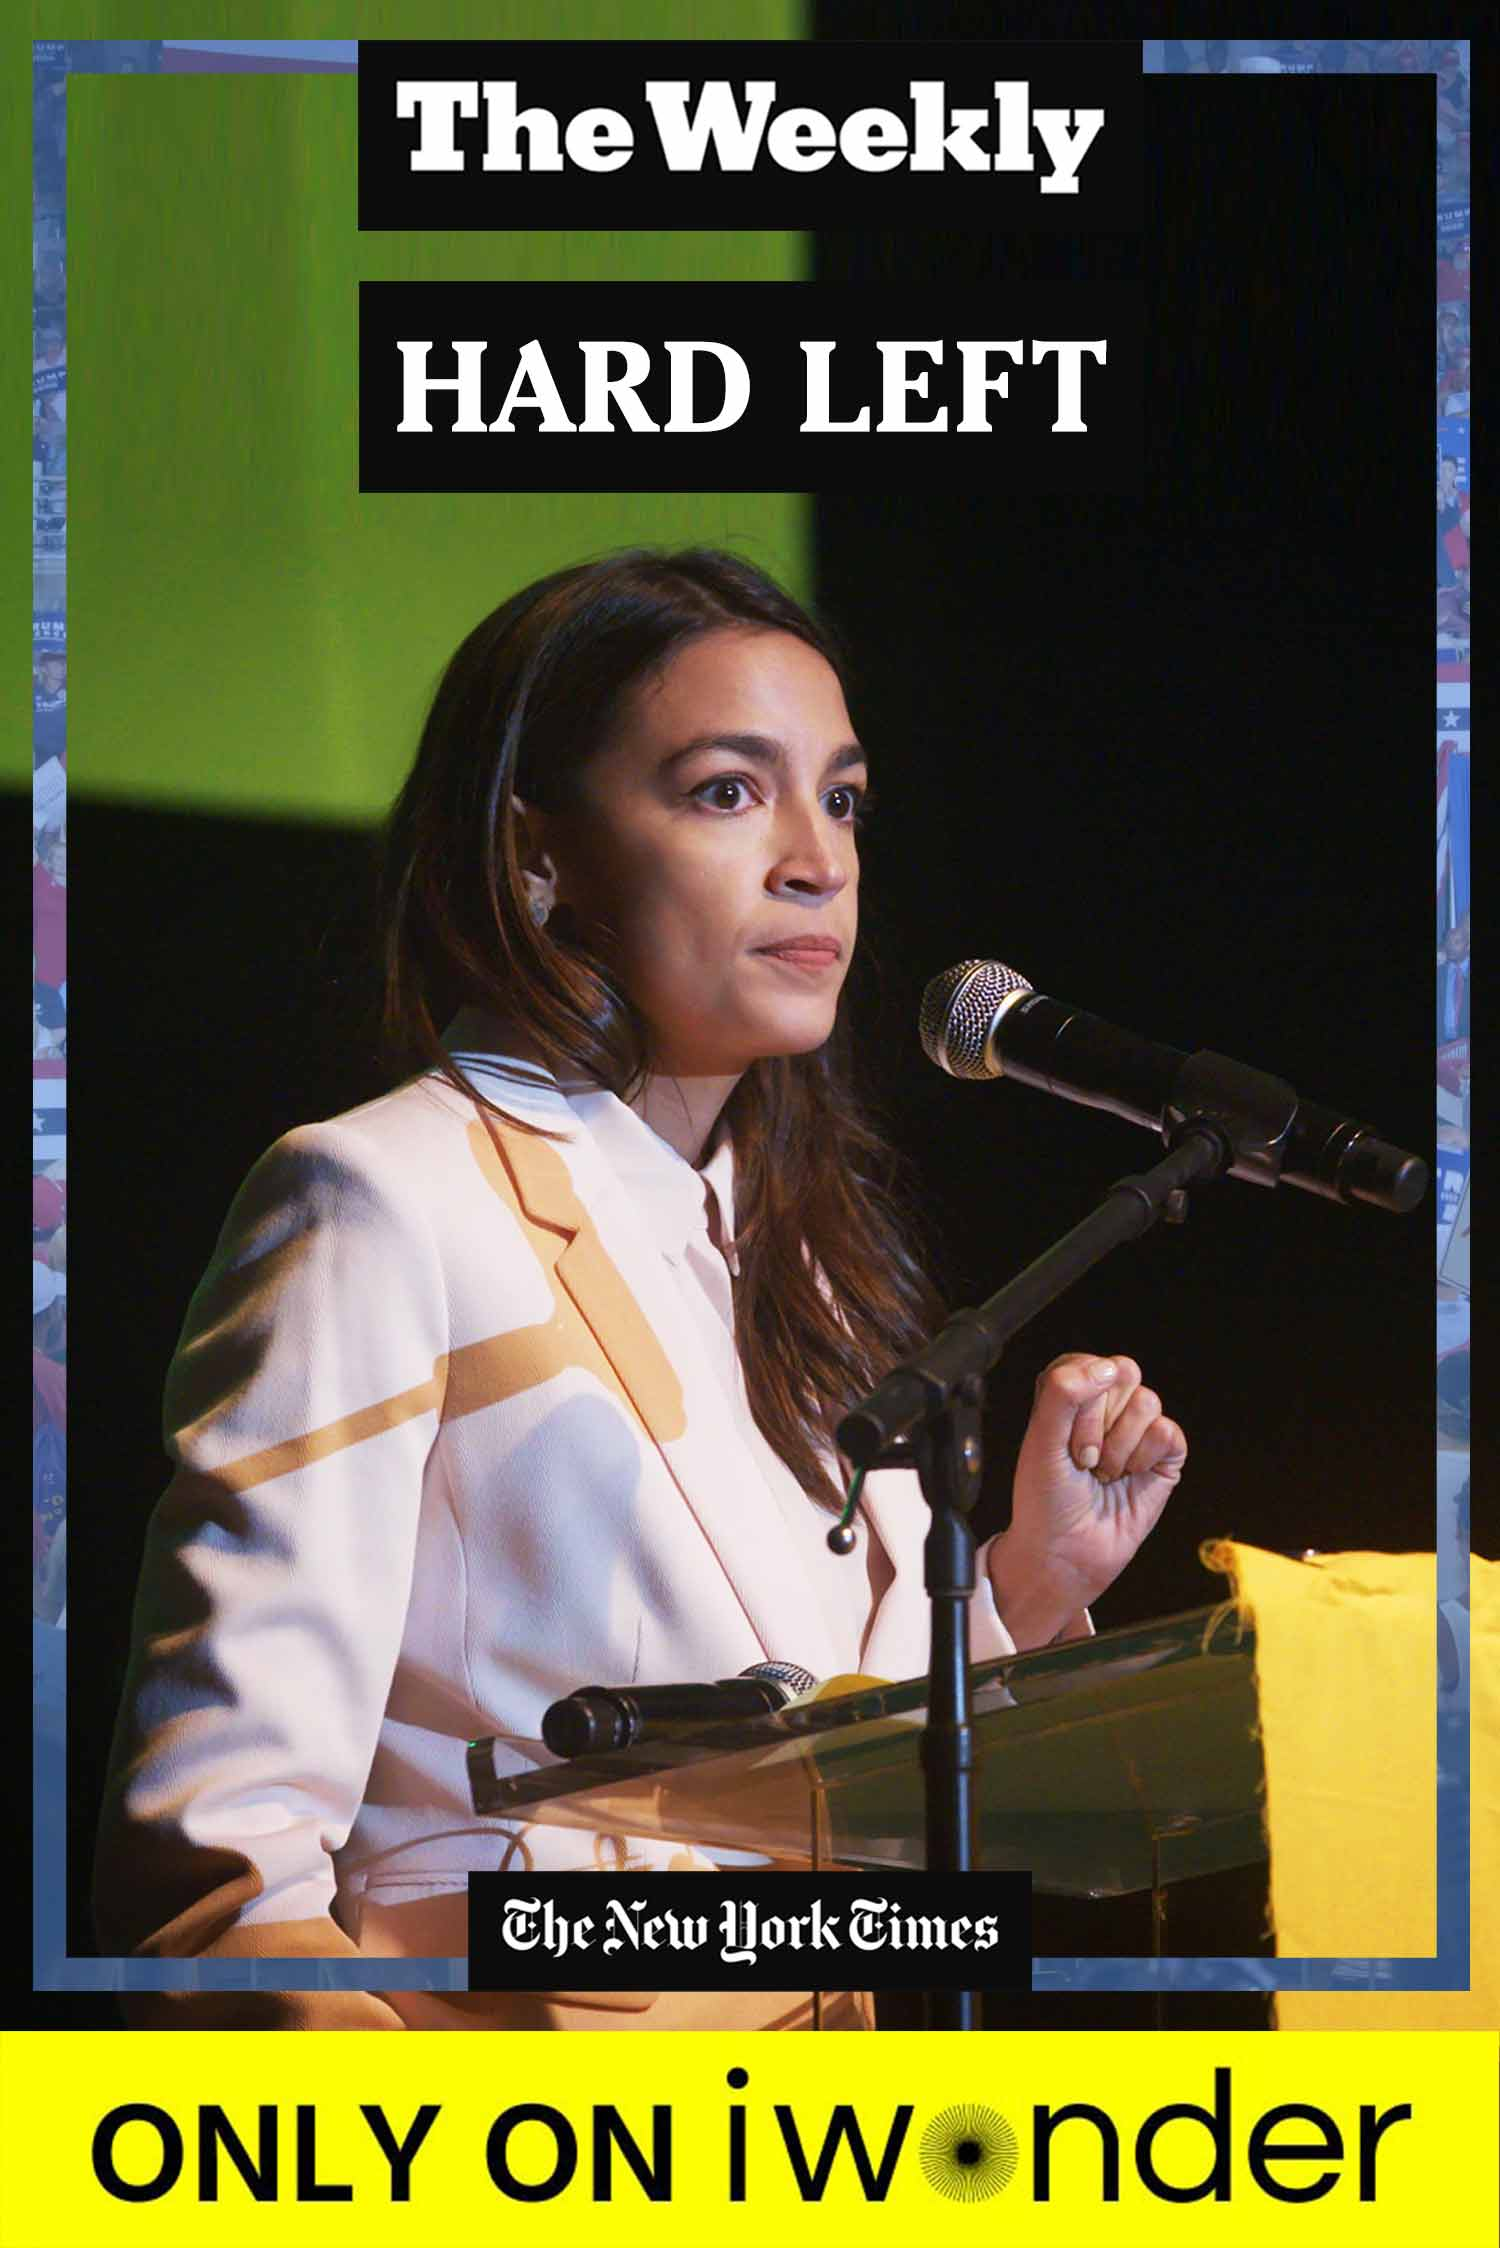 The Weekly: Hard Left